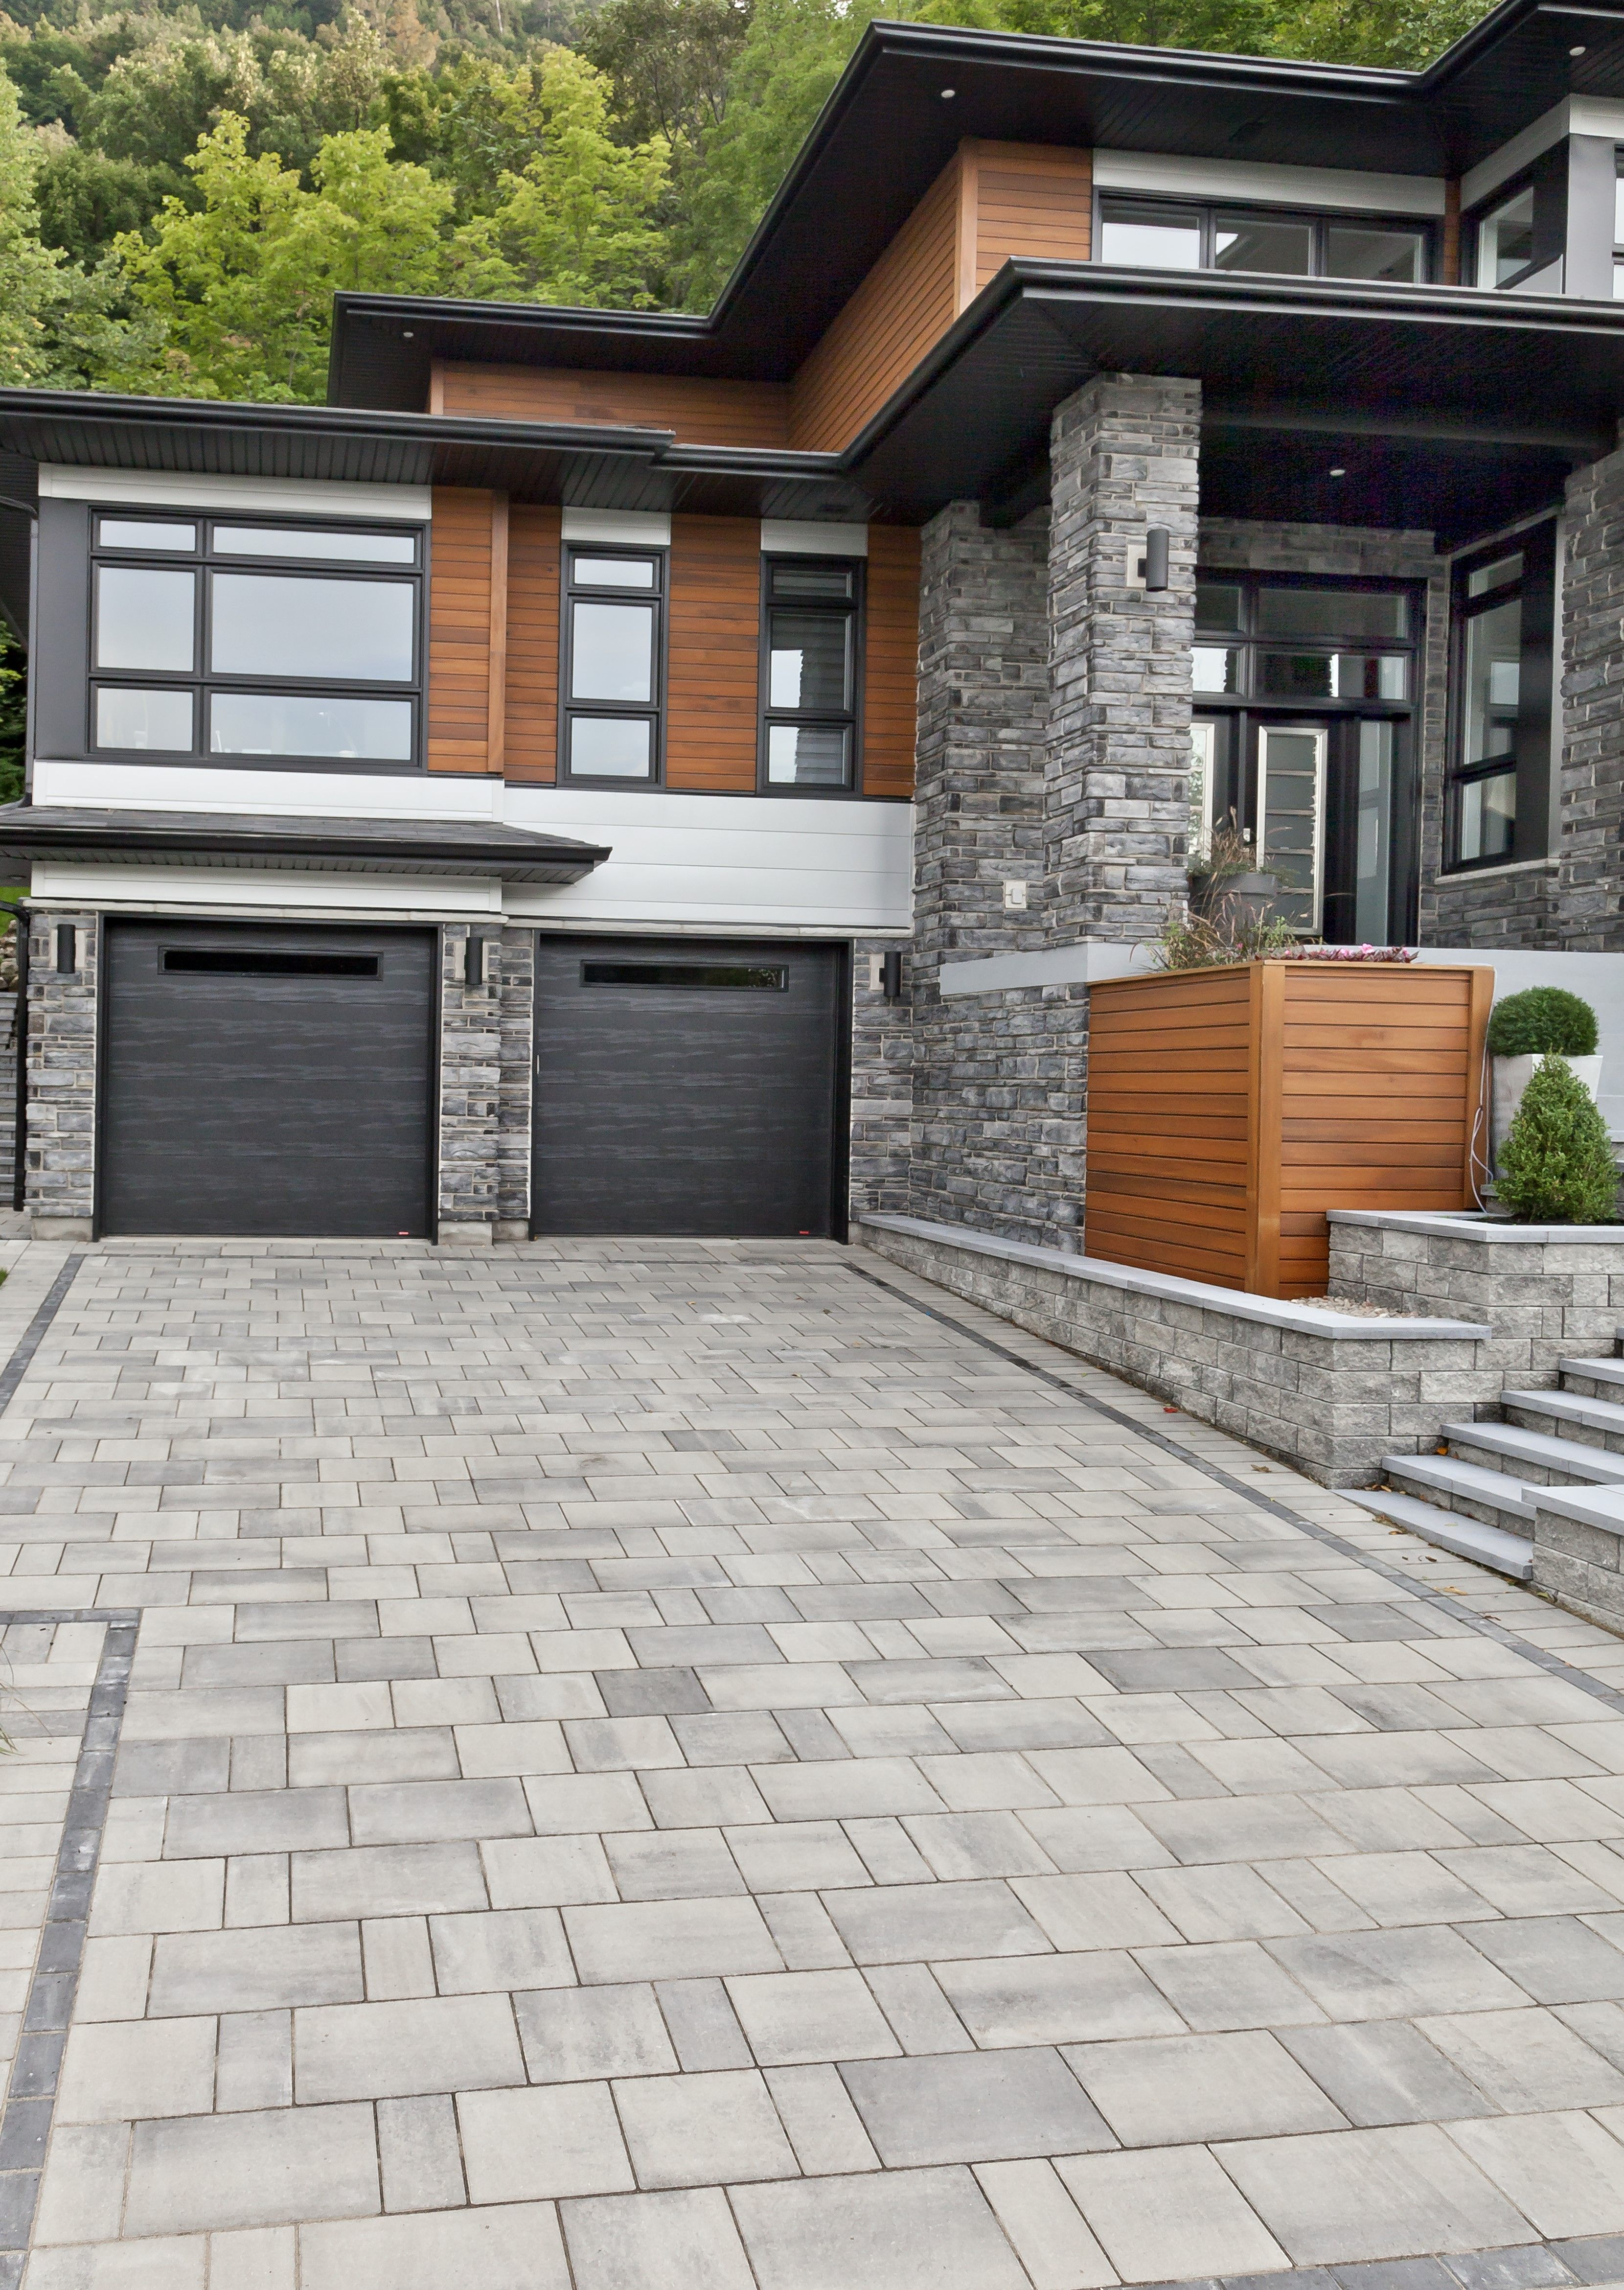 Driveway Landscaping In 2020 House Exterior Modern House Exterior House Designs Exterior